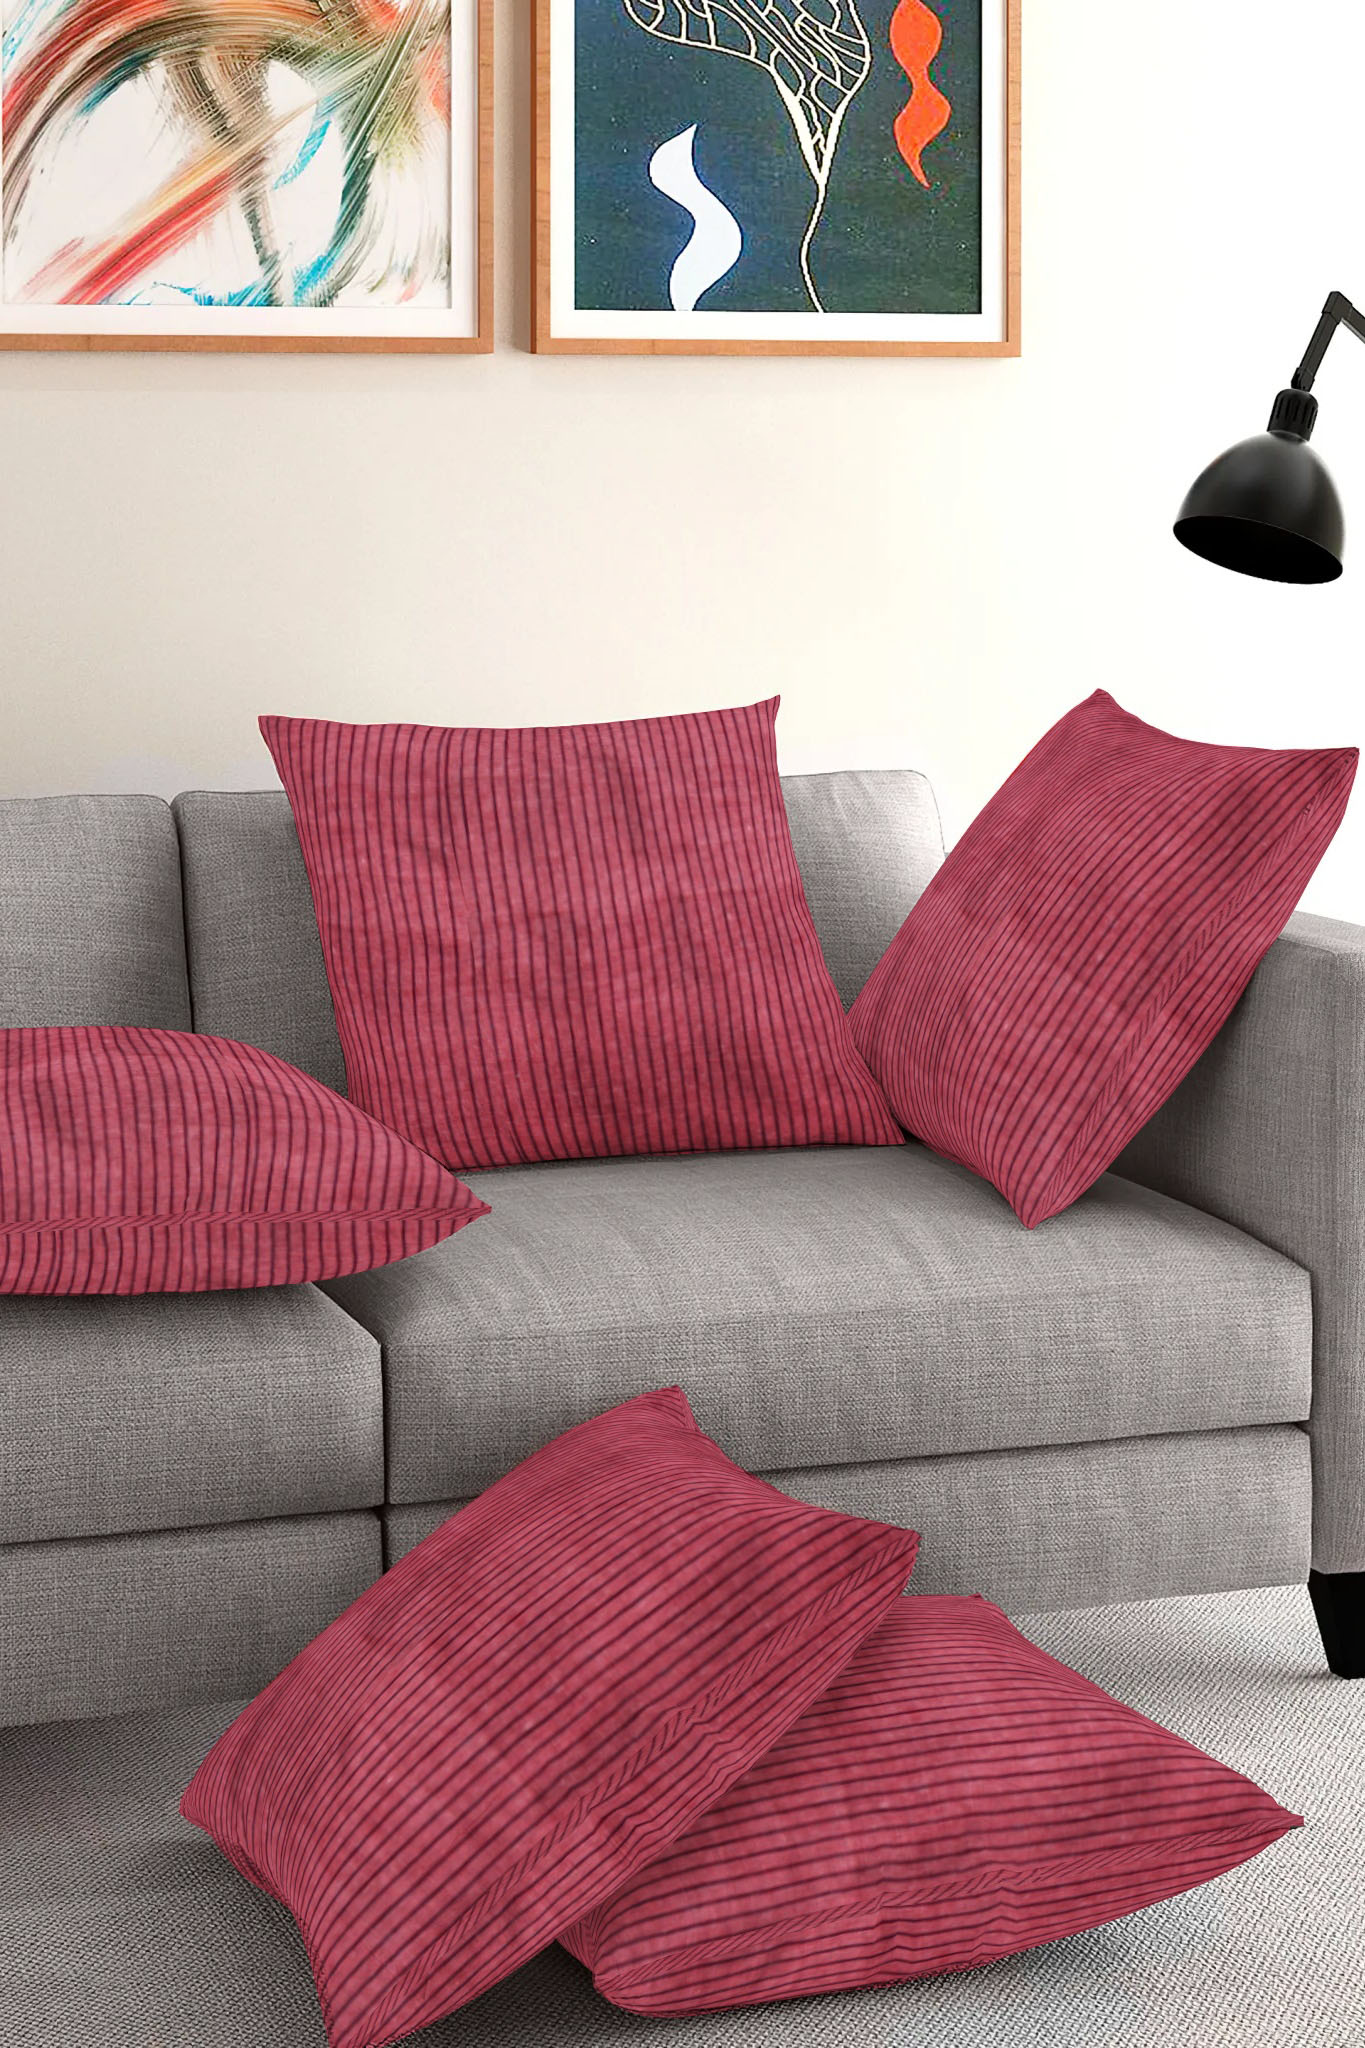 Set of 5-Maroon Black Cotton Cushion Cover-35379-16x16 Inches